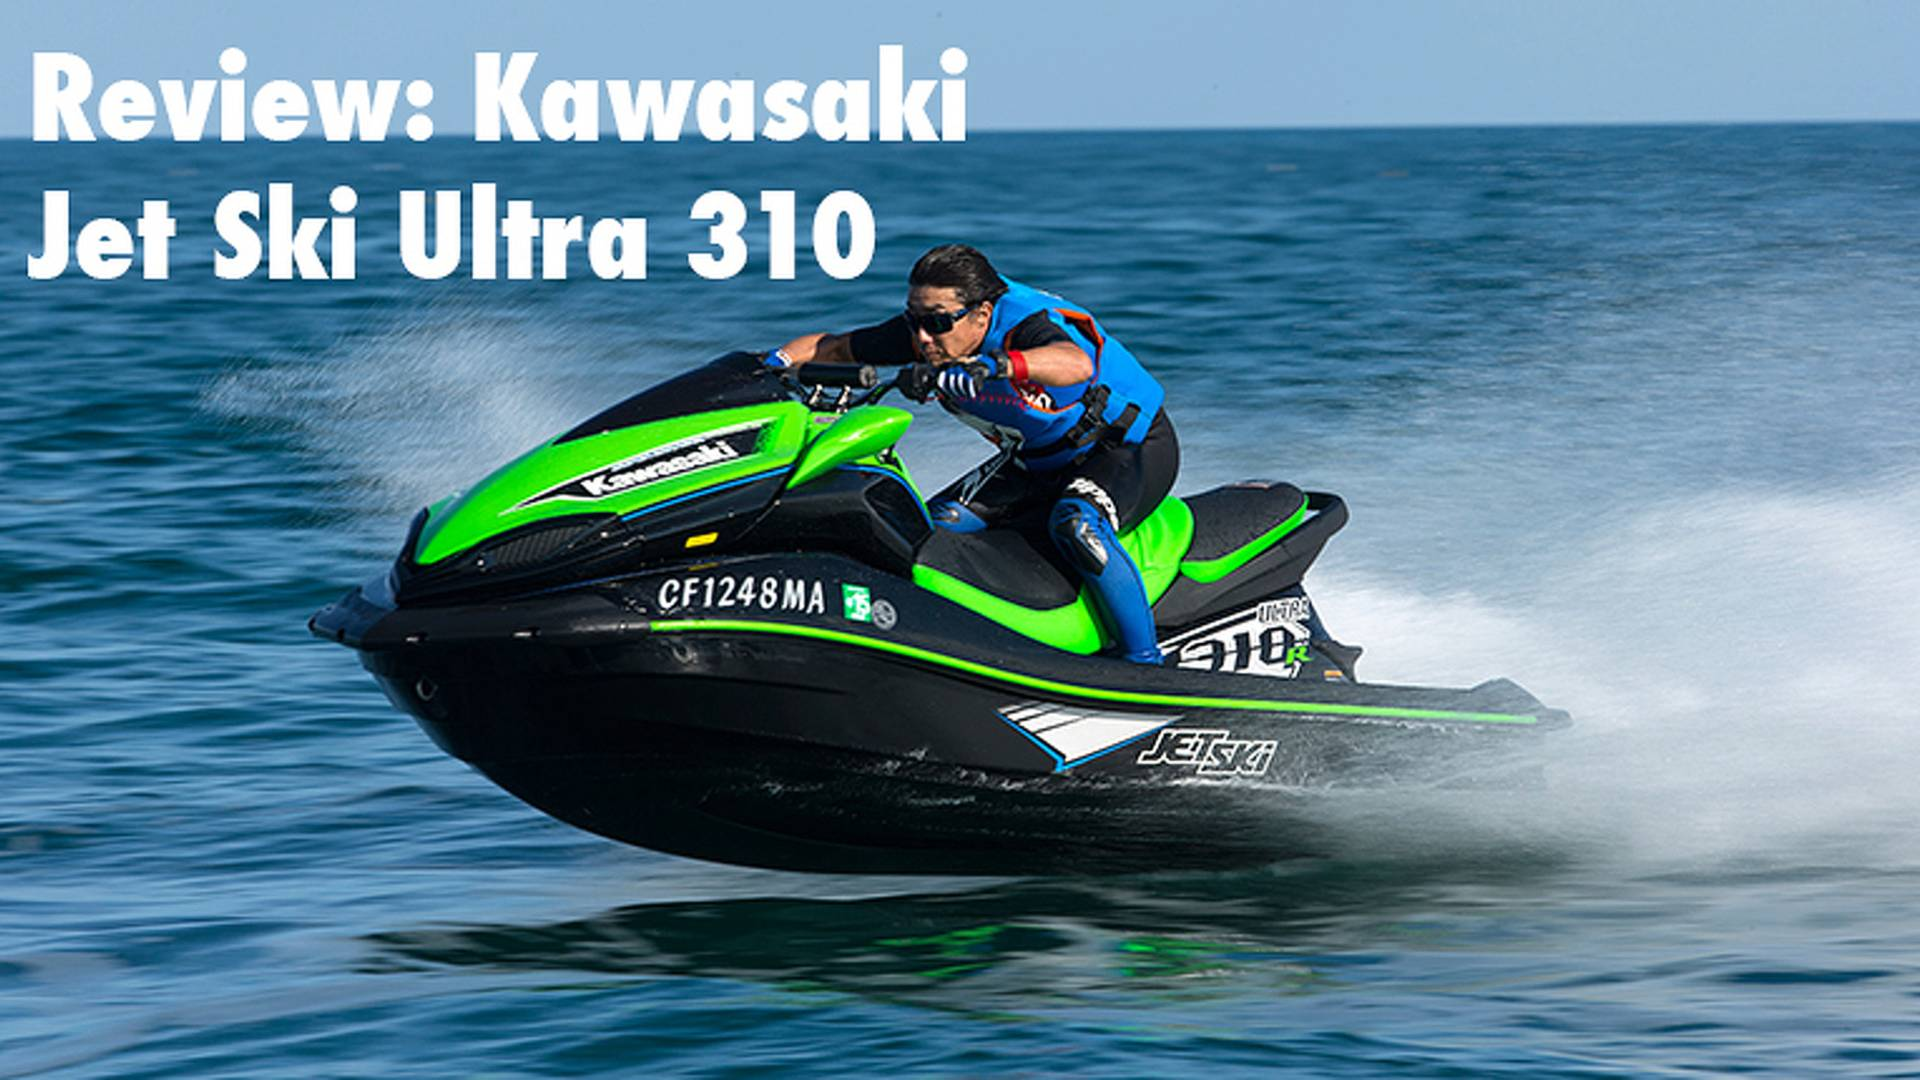 Kawasaki Jet Ski Ultra 310 Review